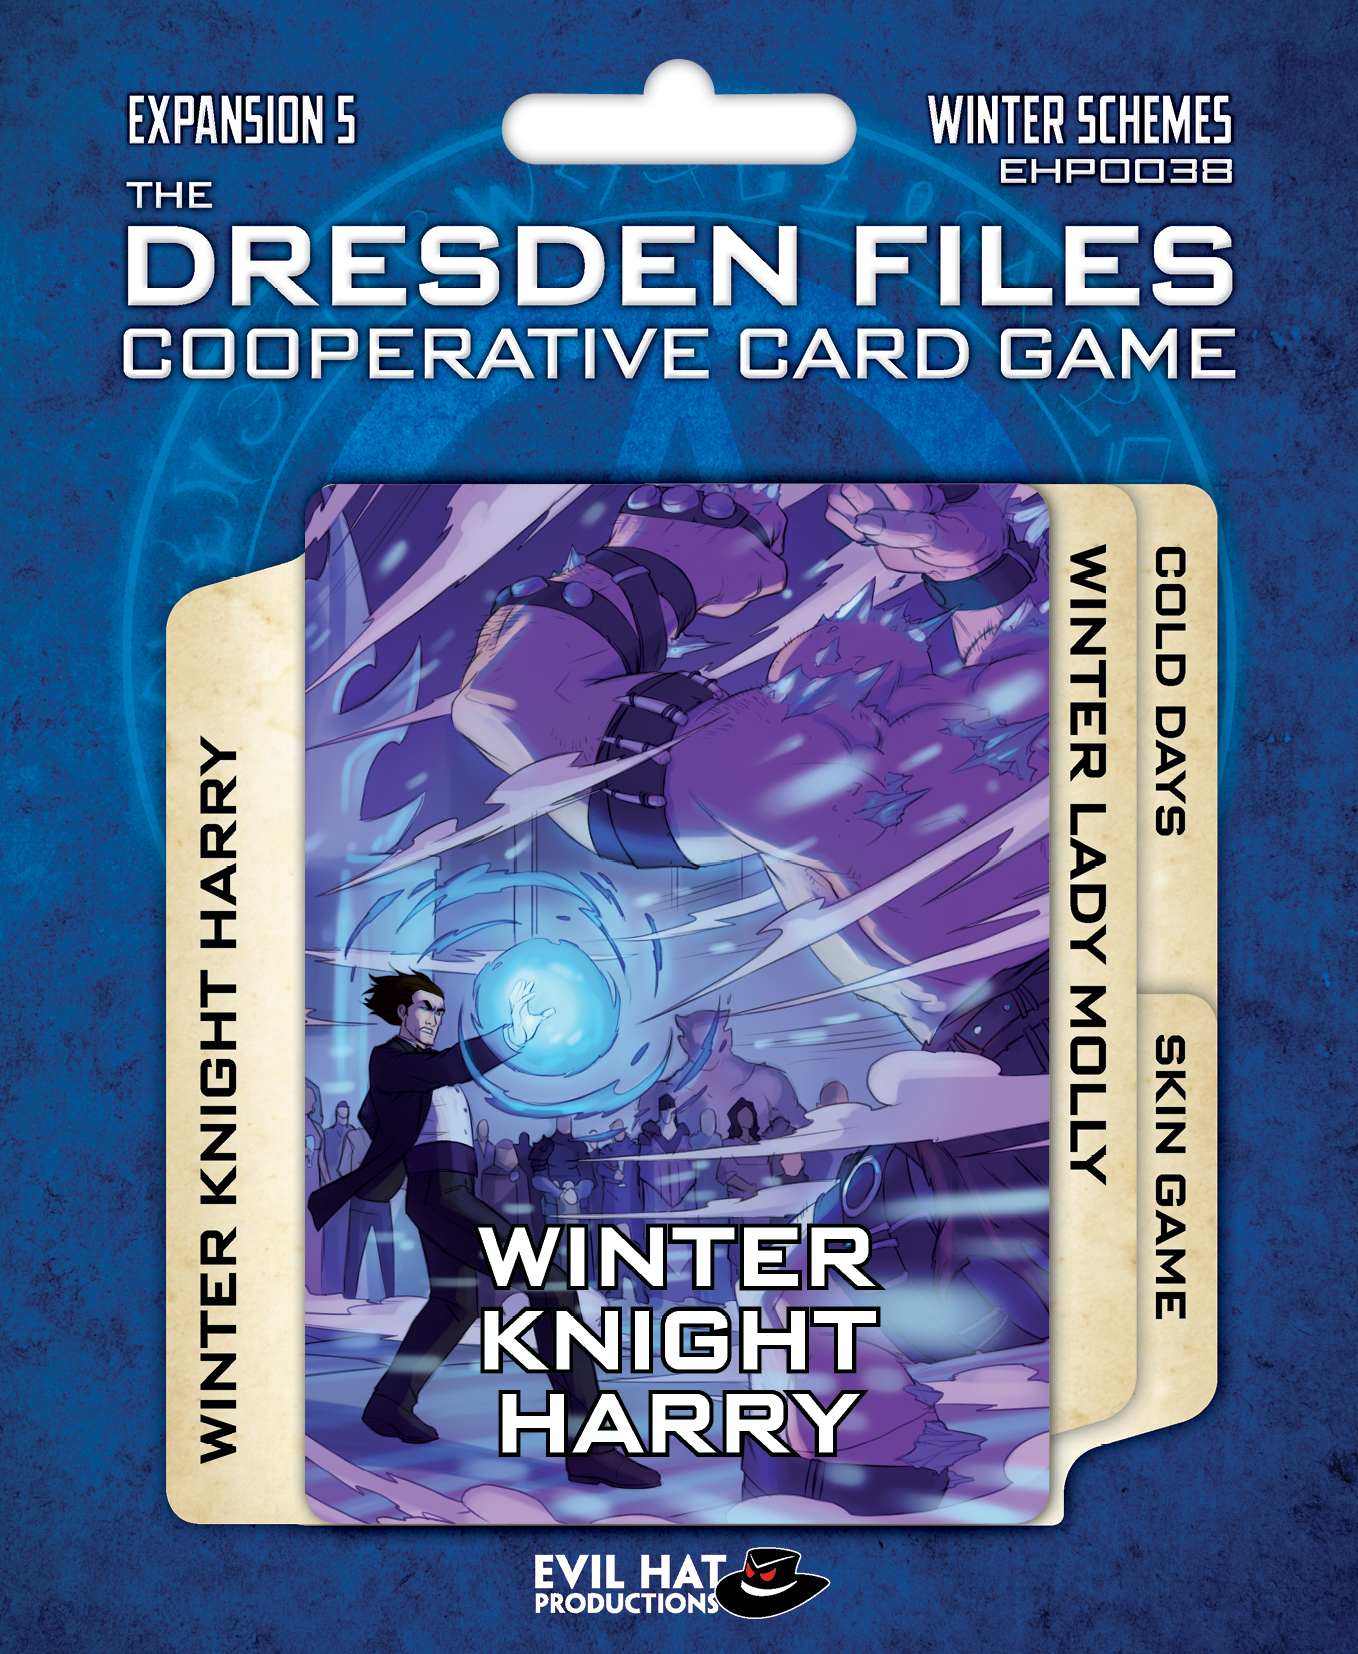 Dresden Files - Cooperative Card Game - Expansion 5 - Winter Schemes